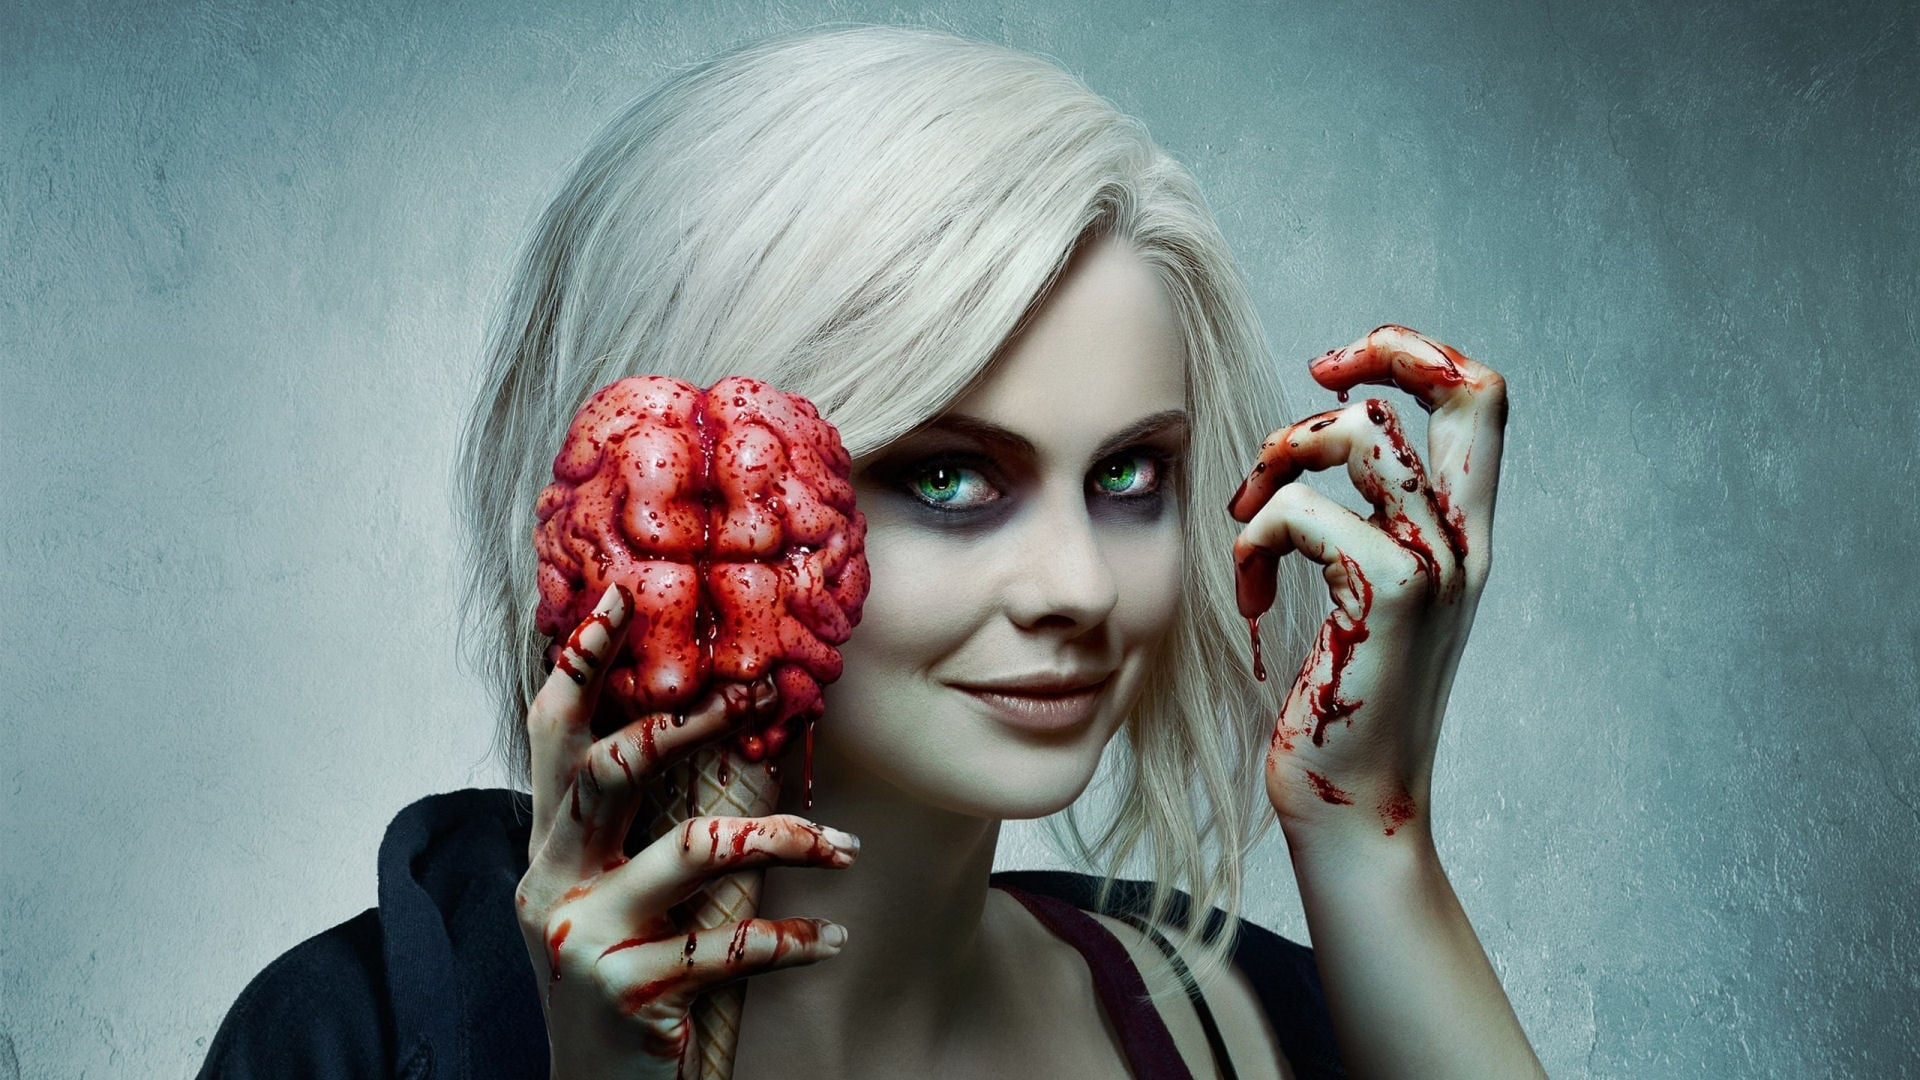 iZombie renewed, Heart of Dixie cancelled and The Messengers still unknown